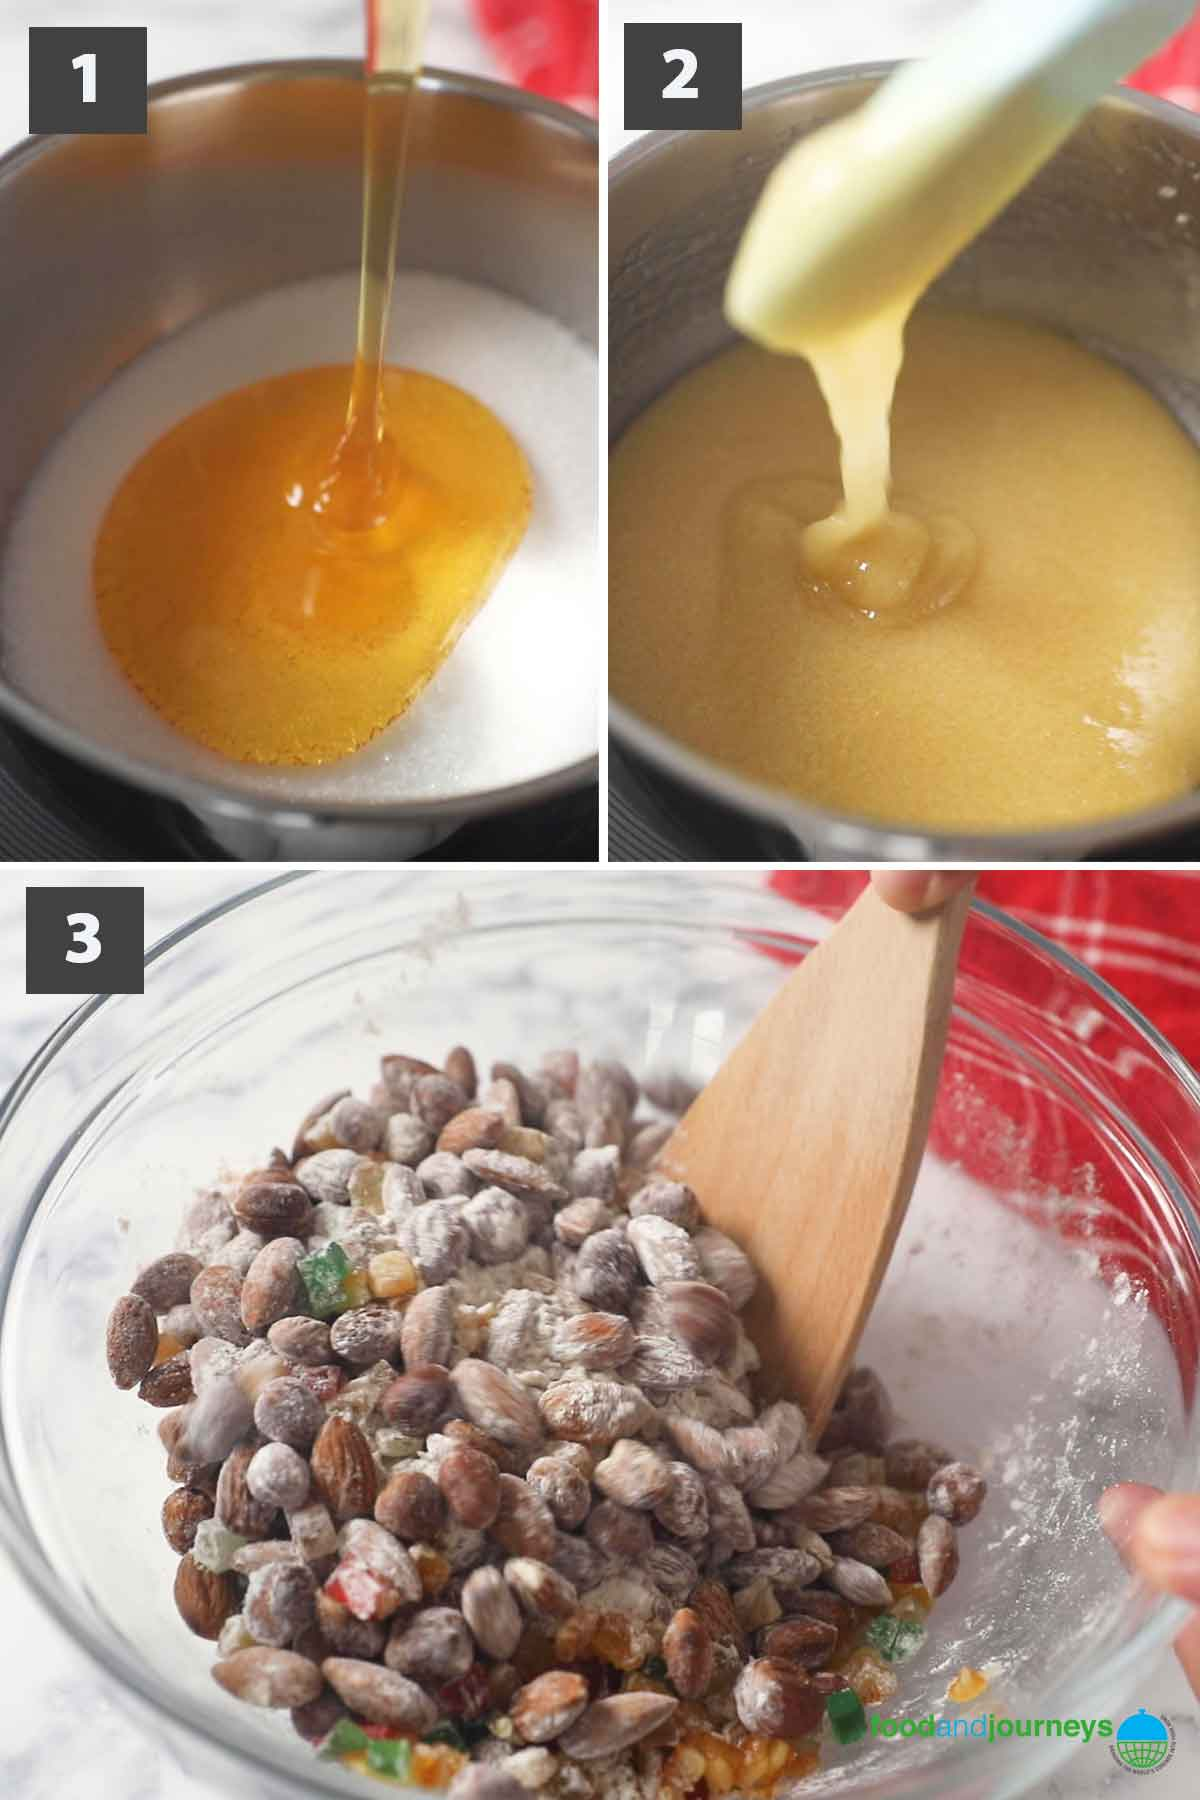 Jun2021 Latest first part of a collage of images showing the step by step process on how to make panforte.